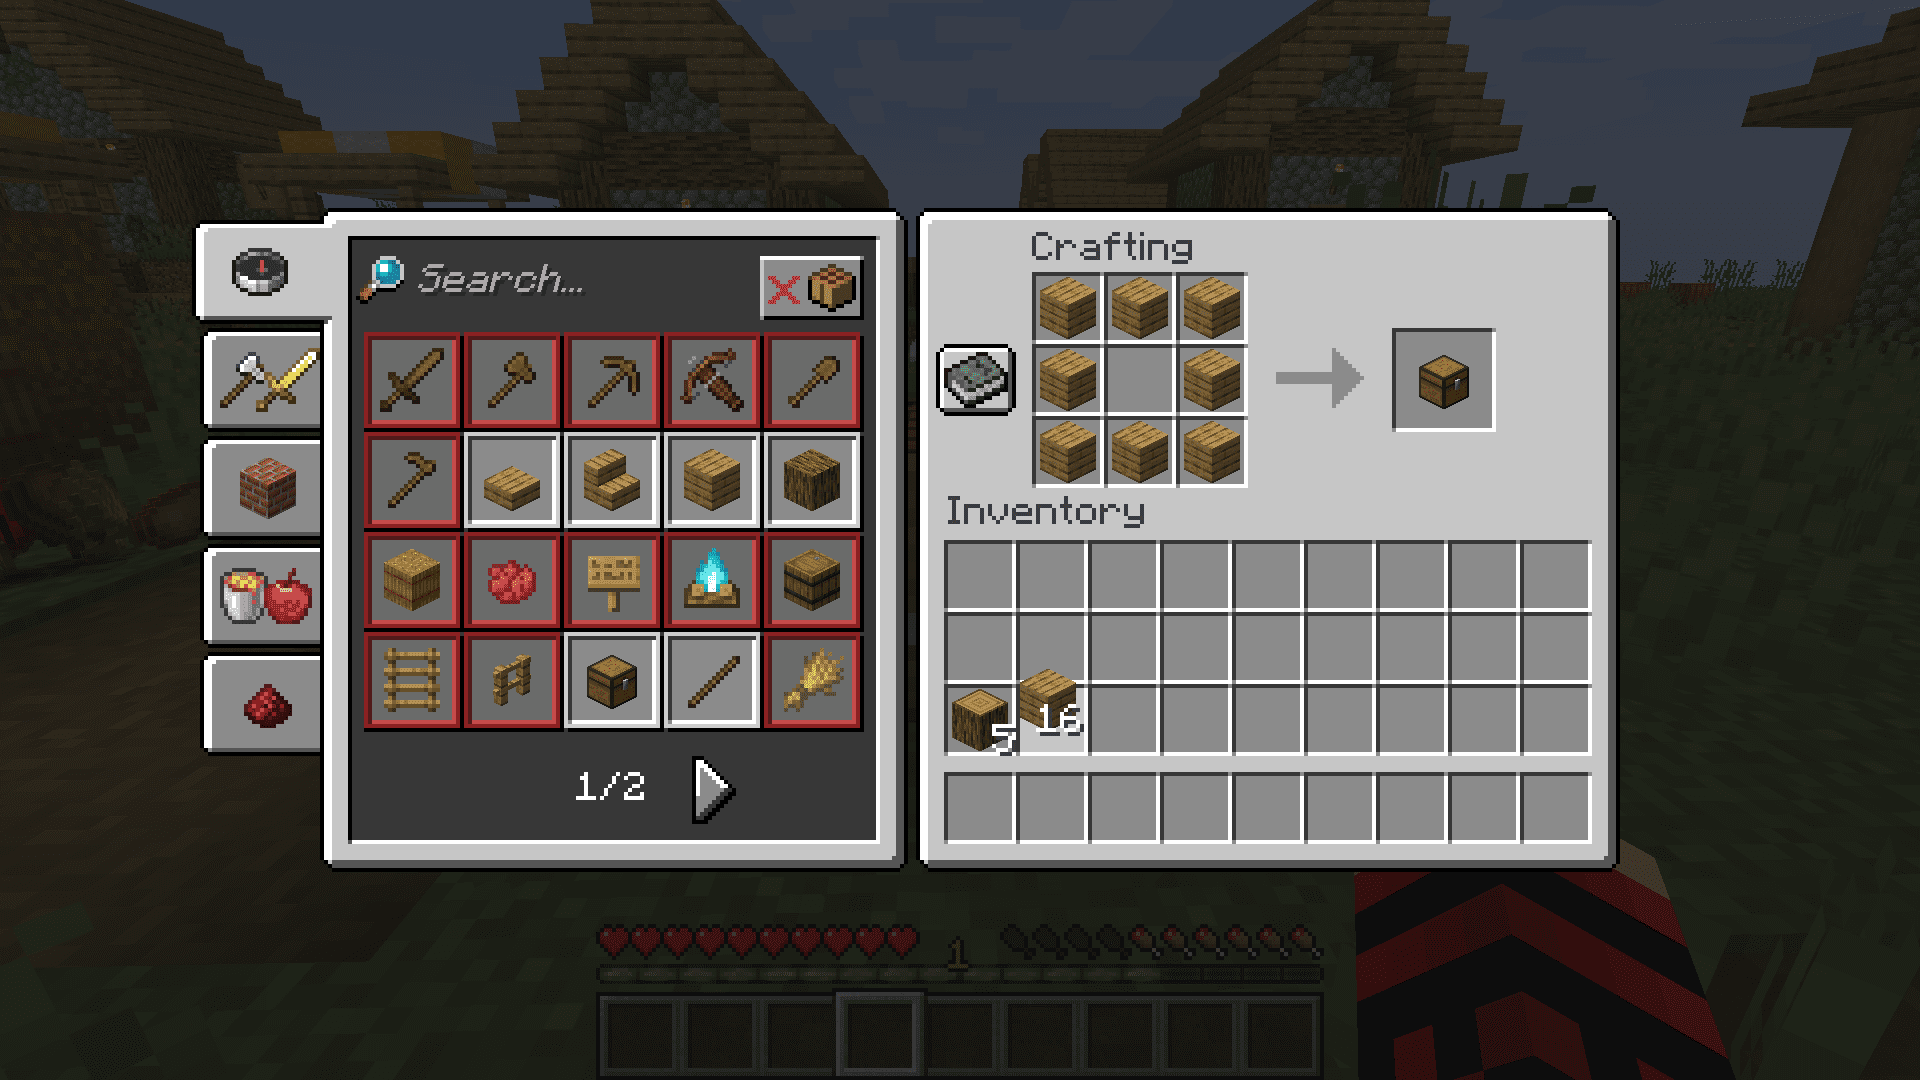 How To Make A Chest In Minecraft? A Complete Guide For Both Java And Bedrock Edition